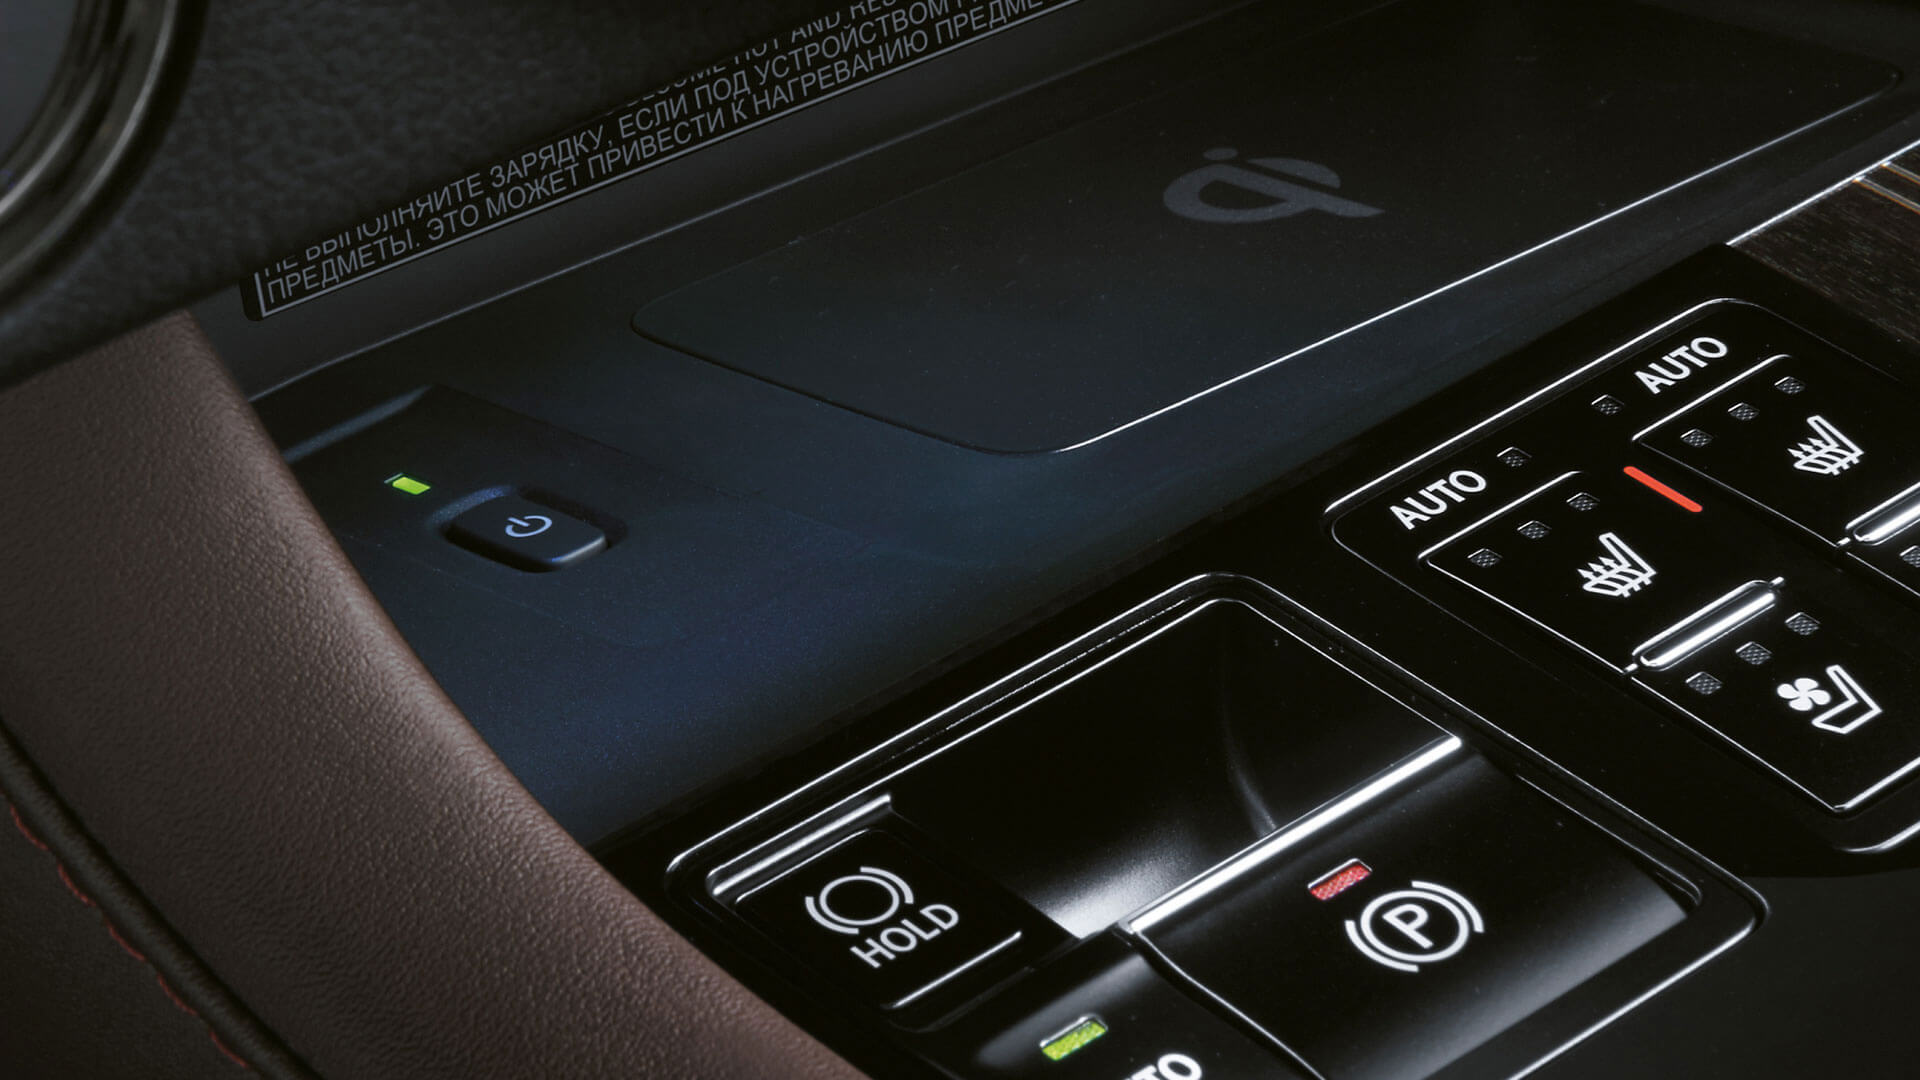 2017 lexus rx 450h features wireless charger